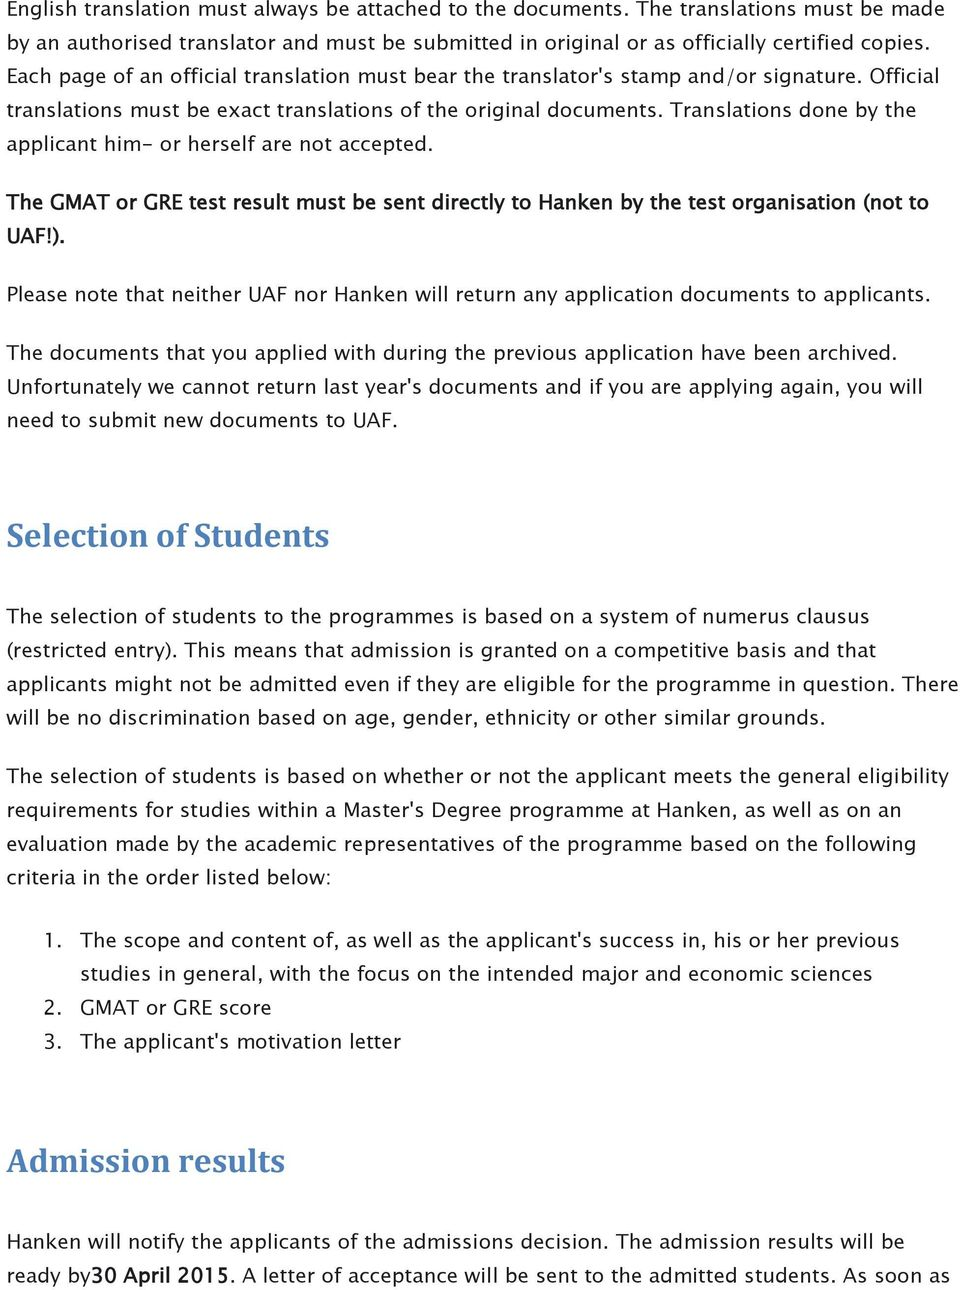 Translations done by the applicant him- or herself are not accepted. The GMAT or GRE test result must be sent directly to Hanken by the test organisation (not to UAF!).